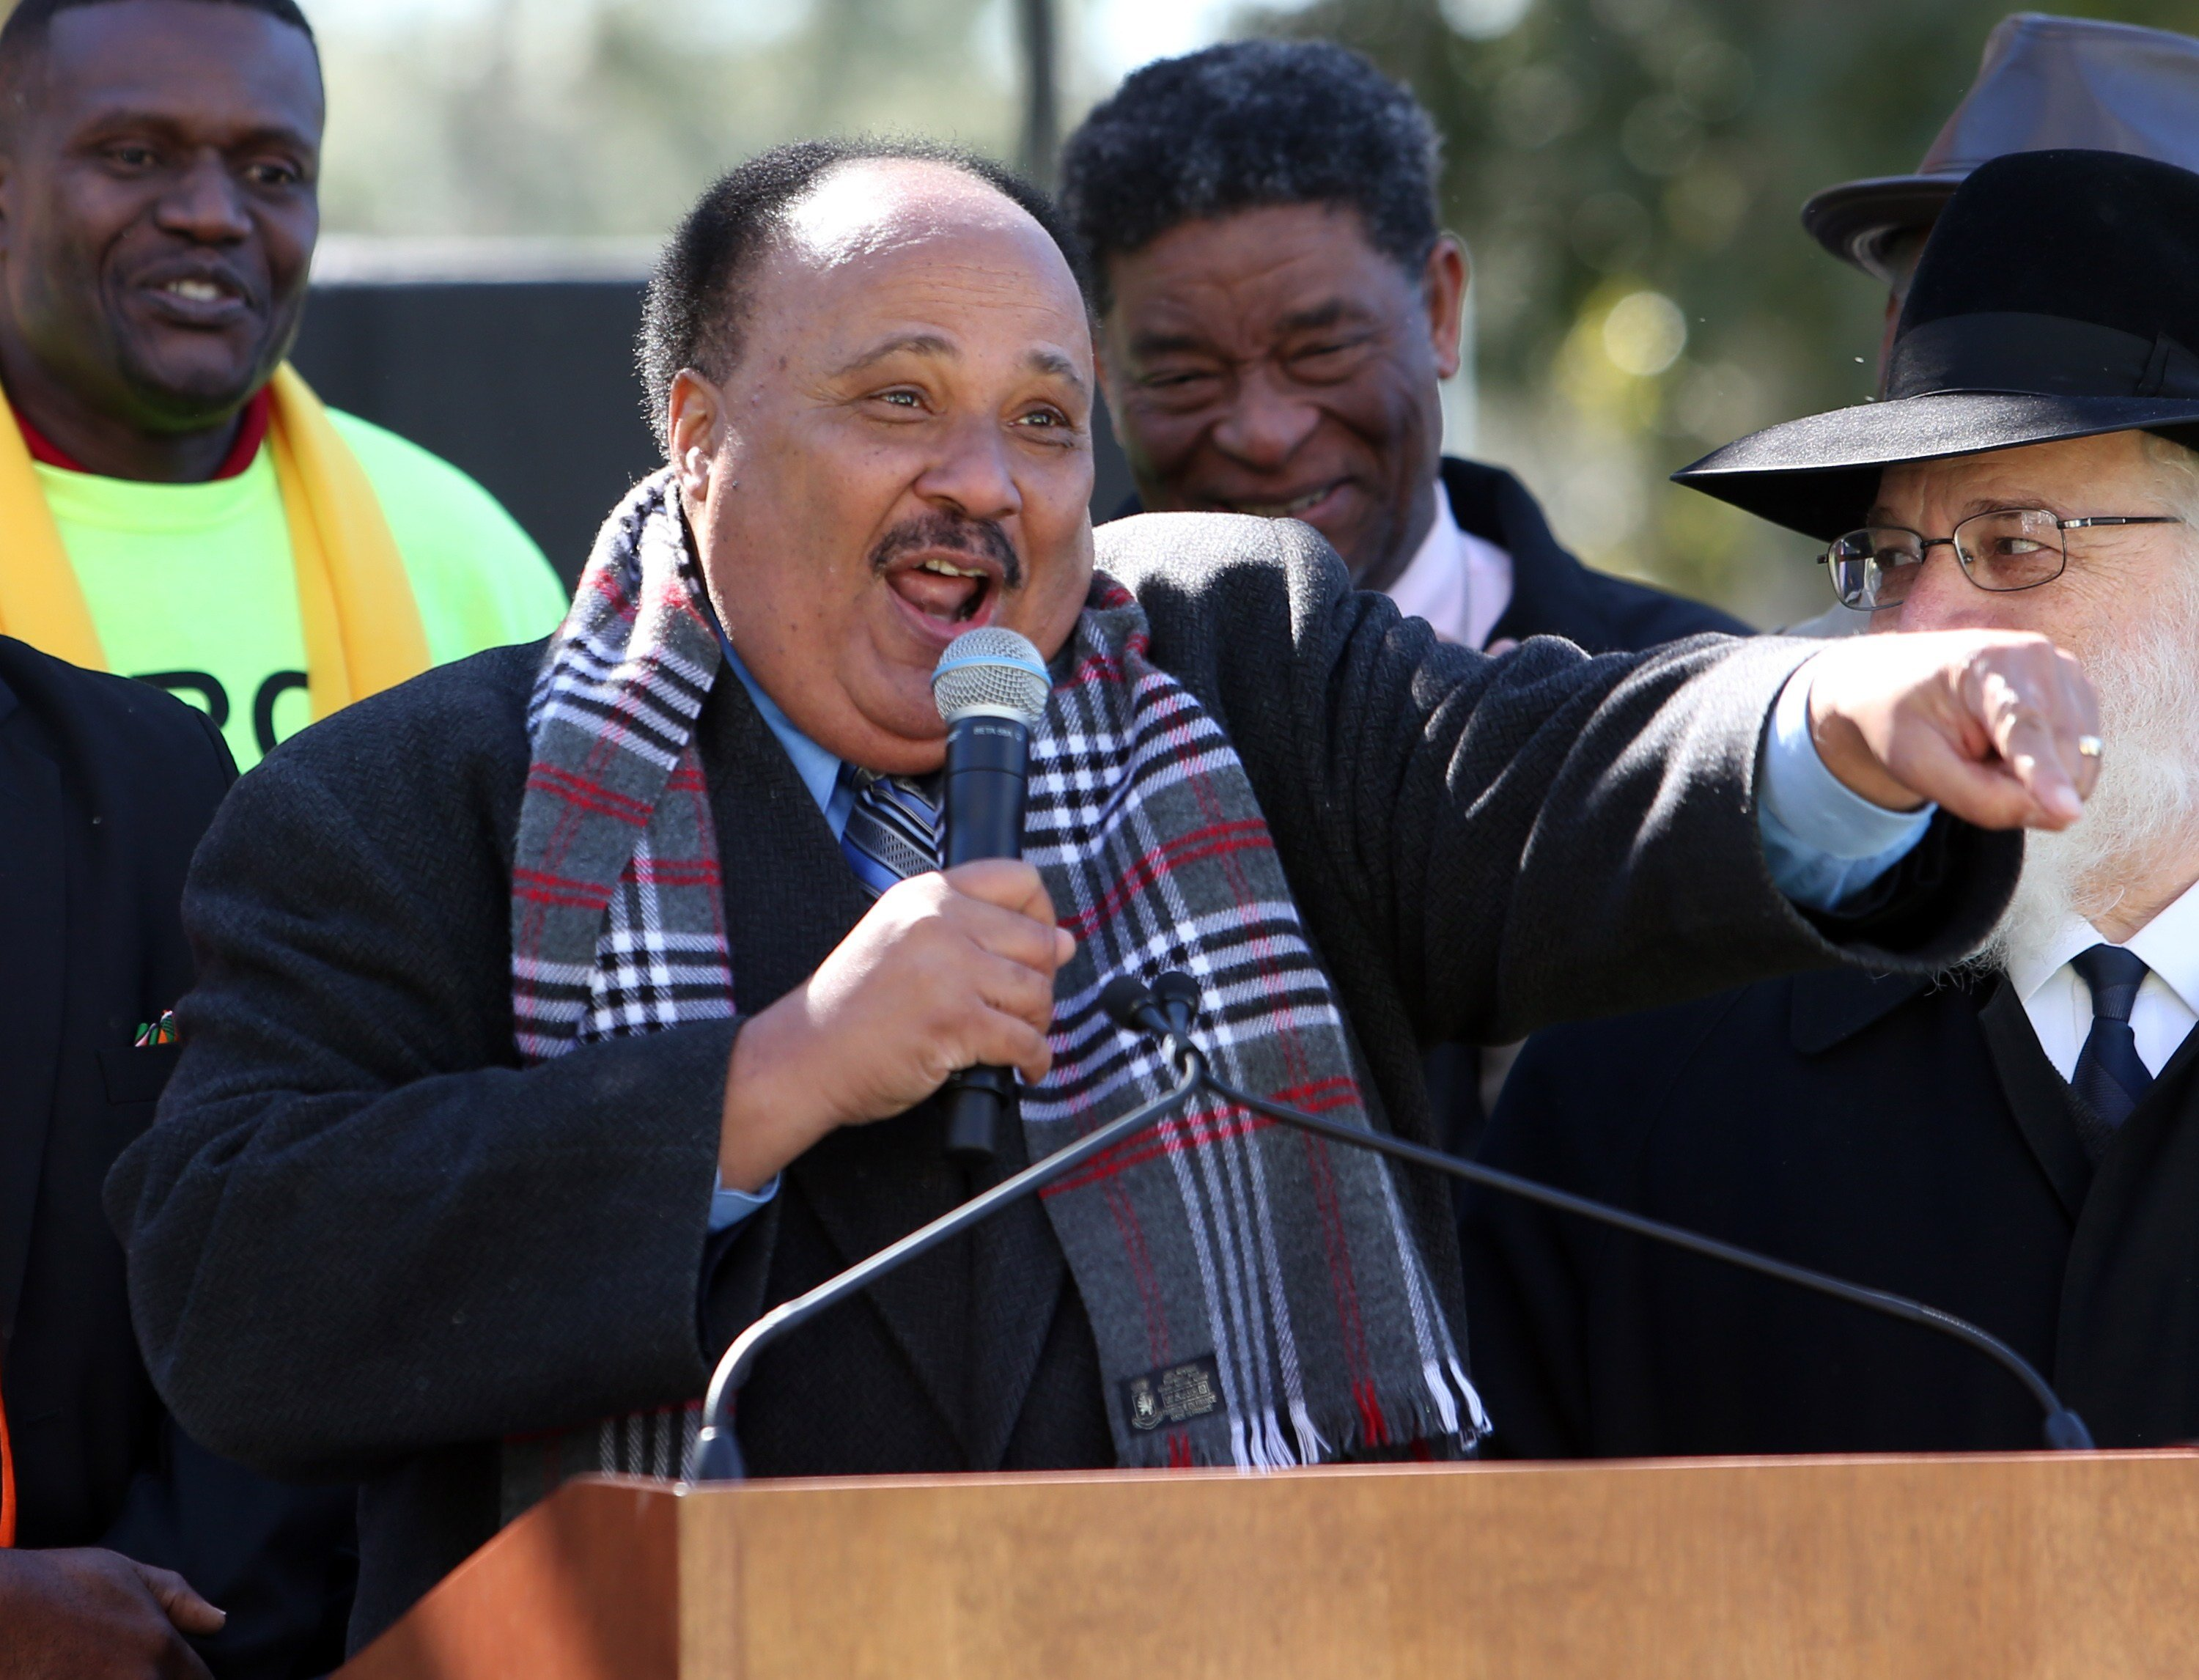 Martin Luther King III speaks to demonstrators at the Capitol as they rally in support of the school voucher program, Tuesday, Jan.19, 2016, in Tallahassee, Fla.  (AP Photo/Steve Cannon)